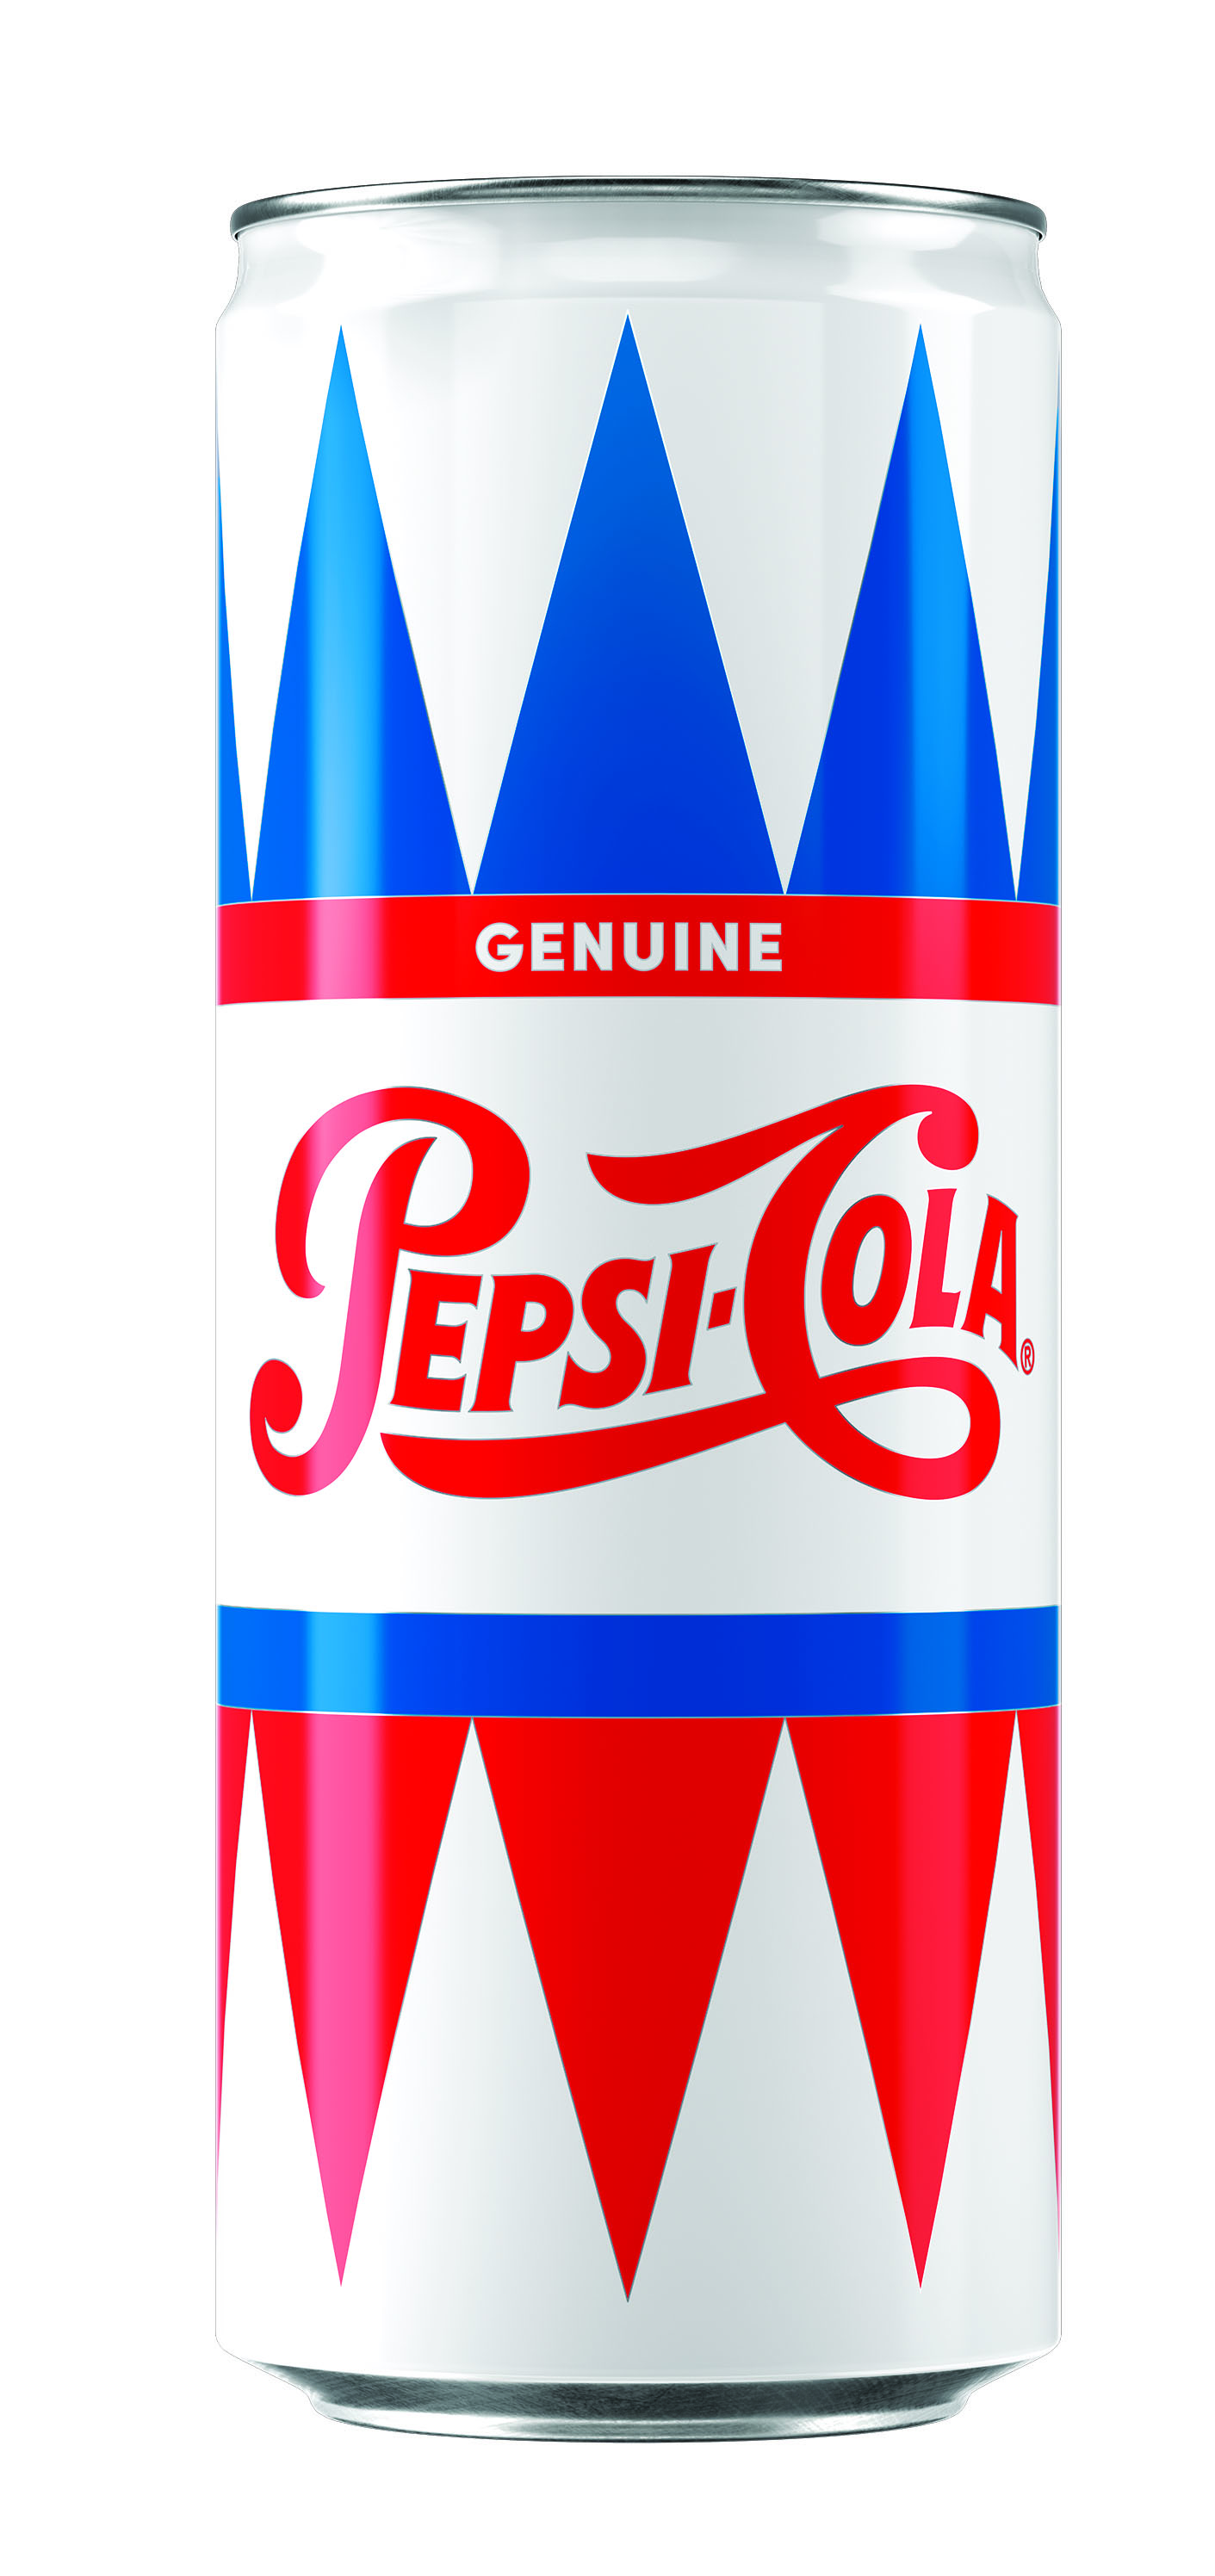 Pepsi takes fans back to the retro days by 'Celebrating Every